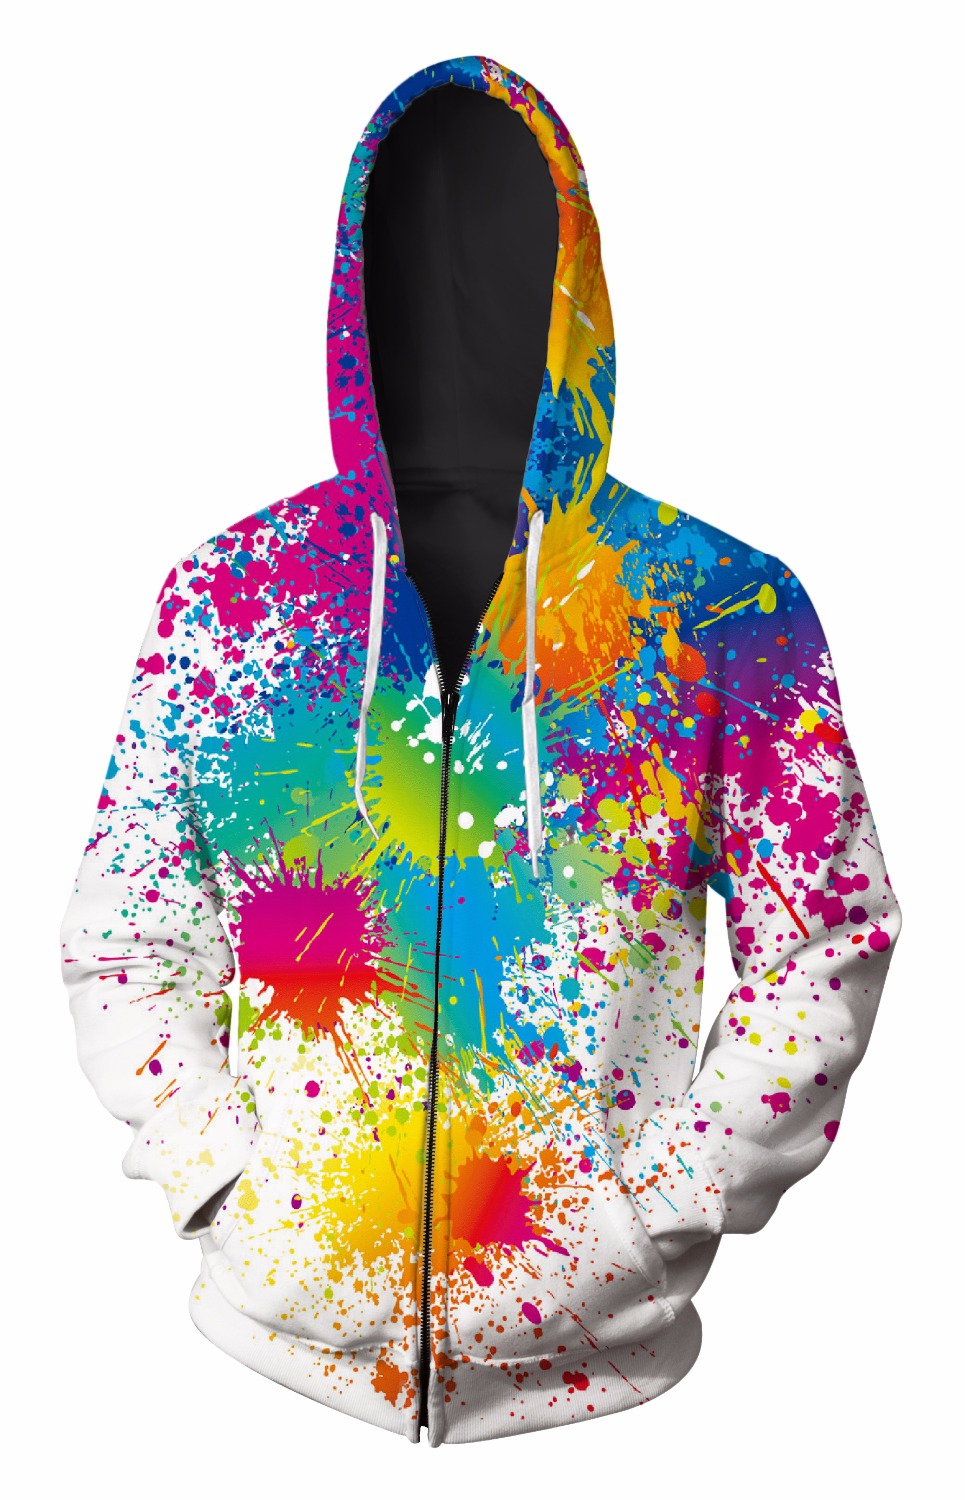 2018 Zip-Up Hoodie 3d Print paint pattern Clothing Women Men Tops Hooded Casual Zipper Sweatshirts Outfits Coats Sweats